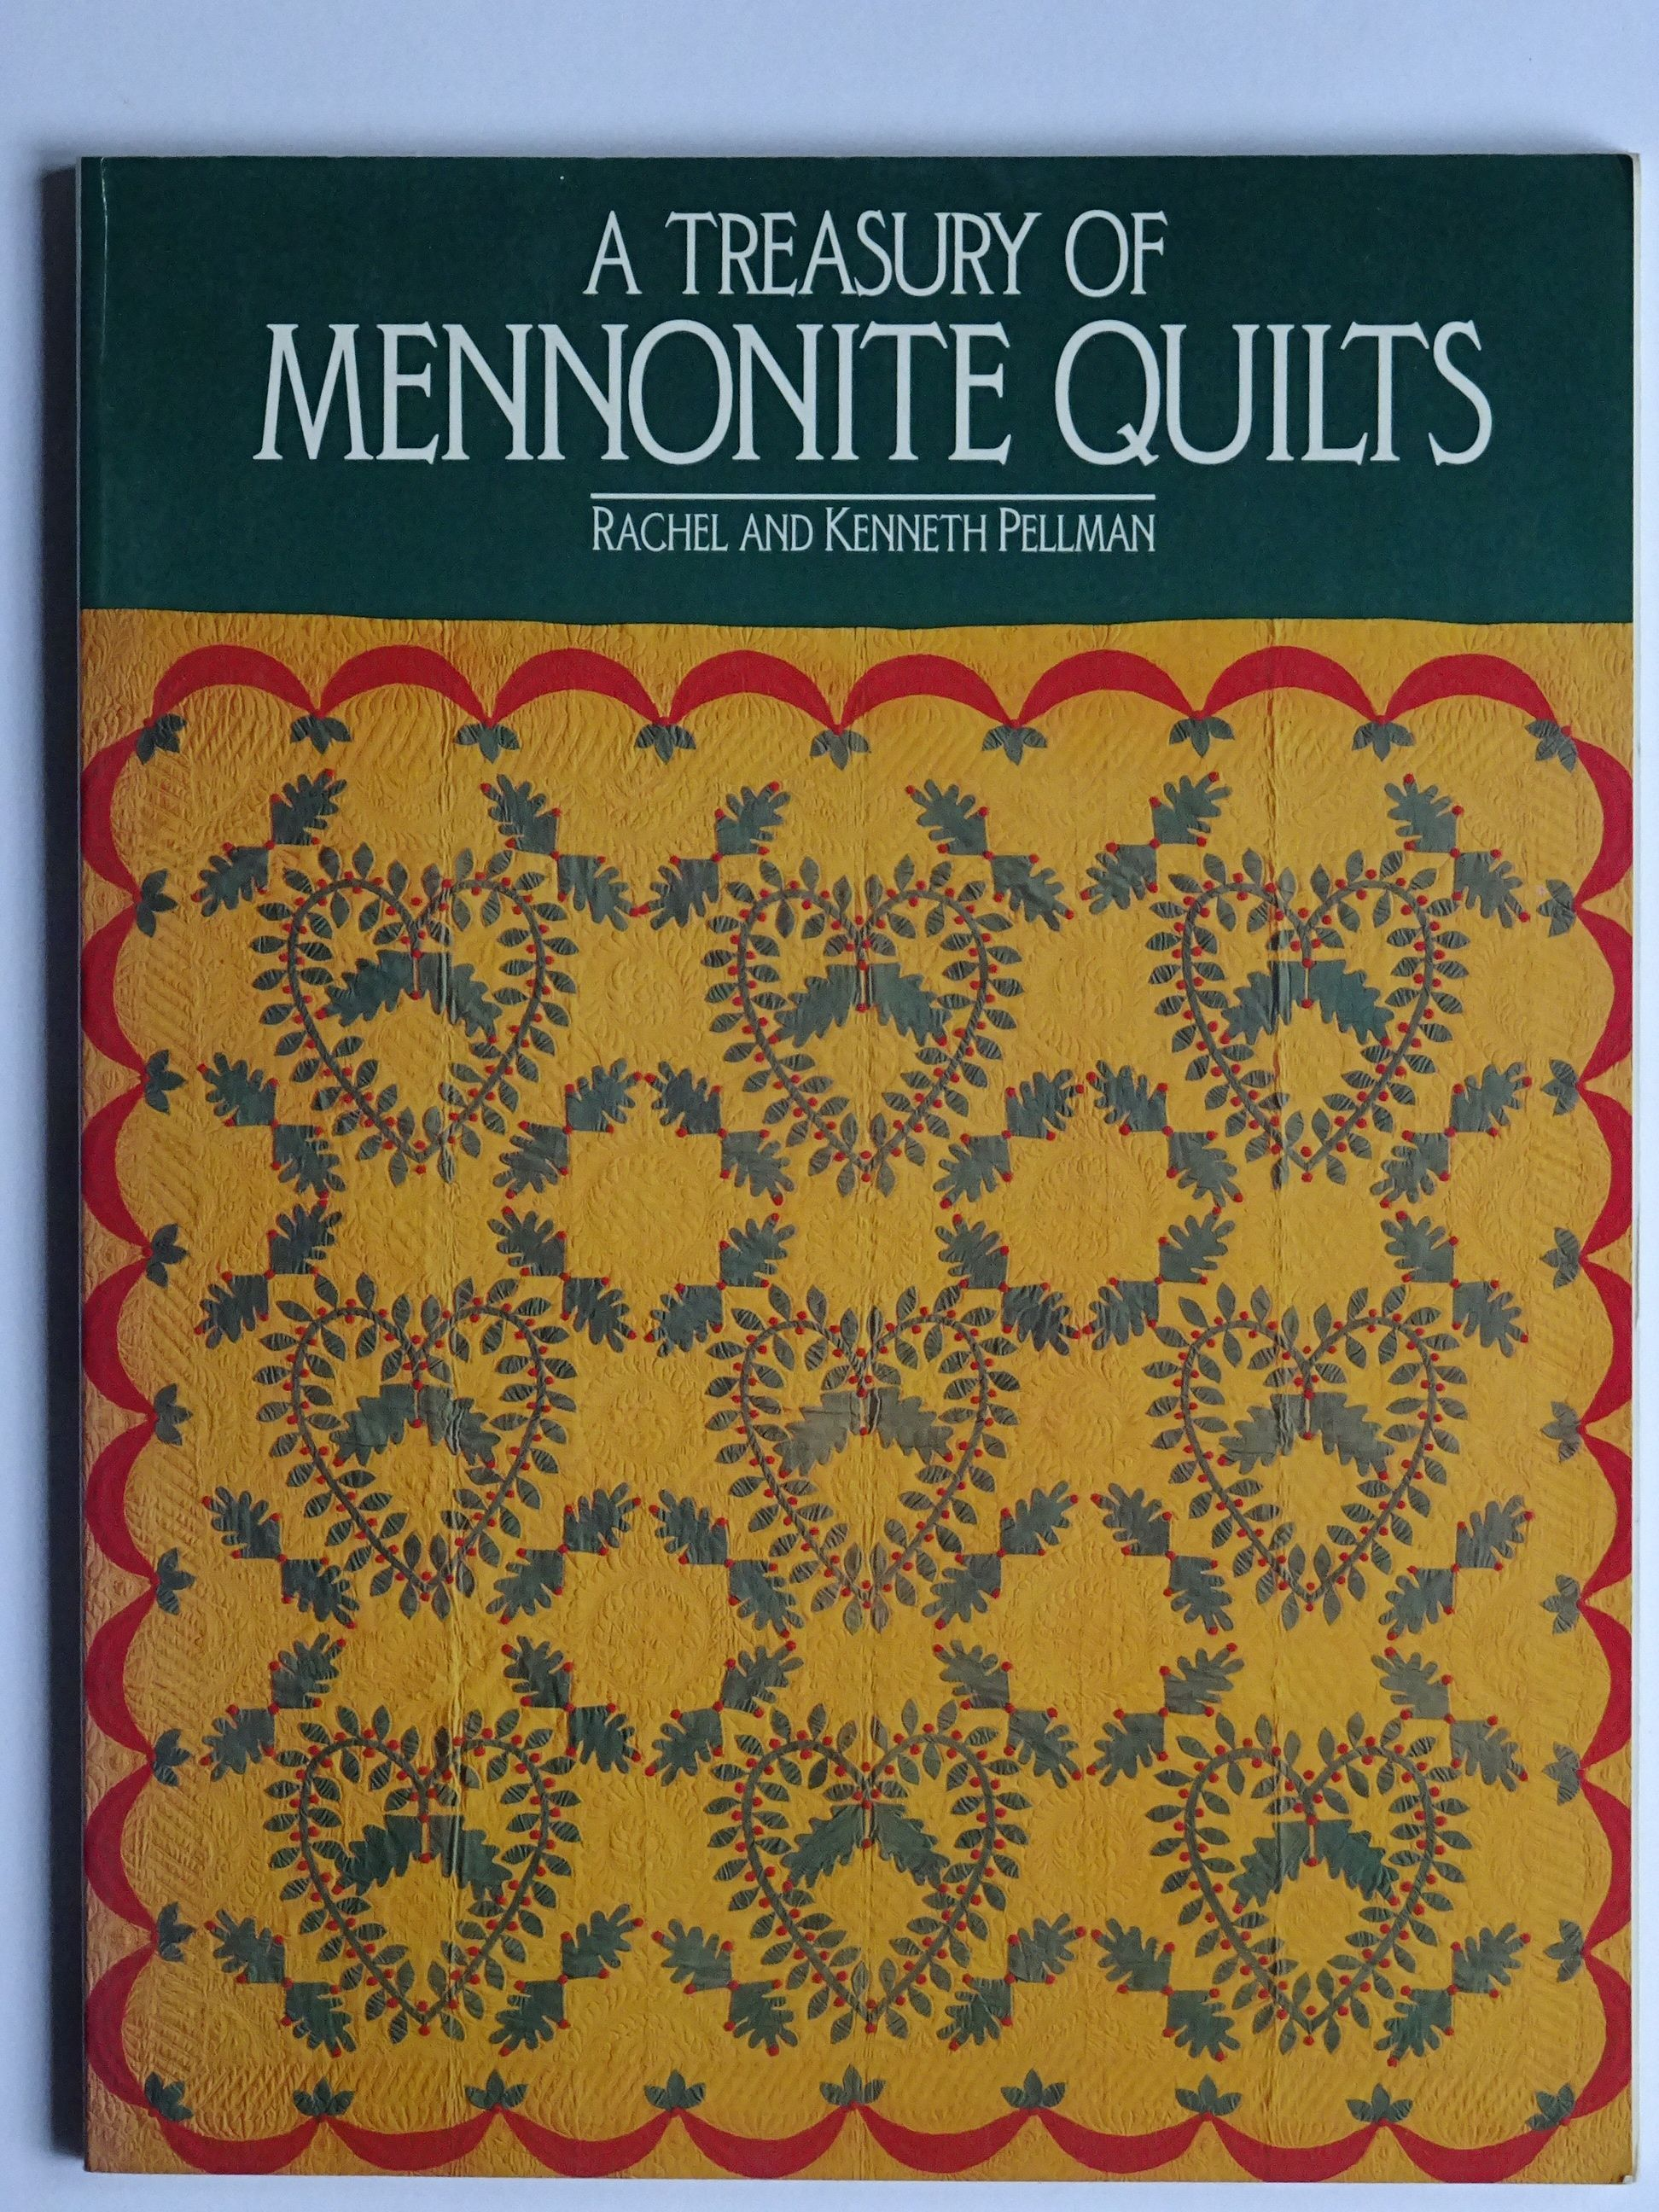 Pellman, Rachel und Kenneth - A Treasury of Mennonite Quilts